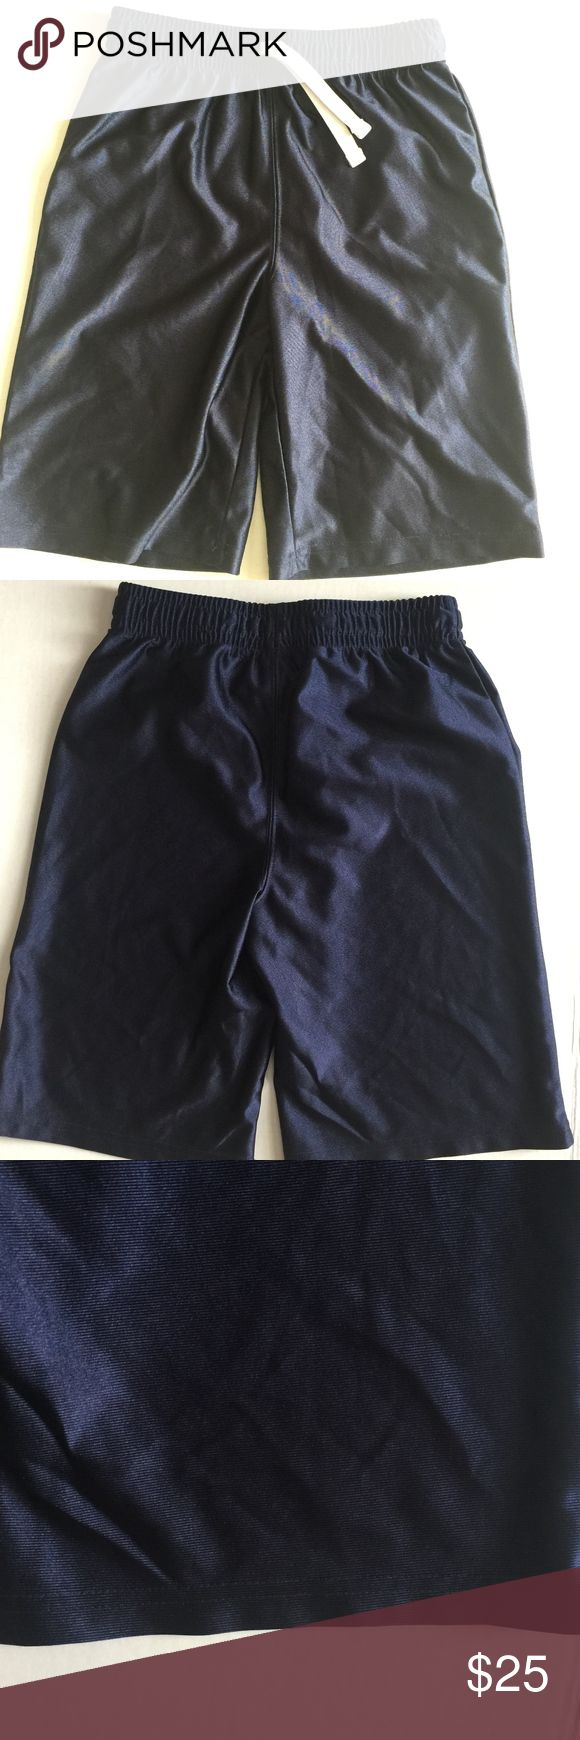 """Boys Children's Place Navy Basketball Shorts Boys Children's Place Navy Basketball Shorts Size Large   •Size: L (10/12) •Waist: 22"""" •Front rise: 10"""" (high rise) •Back rise: 12.5"""" •Length: 18.3"""" •Inseam: 9"""" •Leg opening (lying flat): 9.3"""" •In very good condition •From a smoke-free and pet-free home •Reasonable offers accepted Children's Place Bottoms Shorts"""